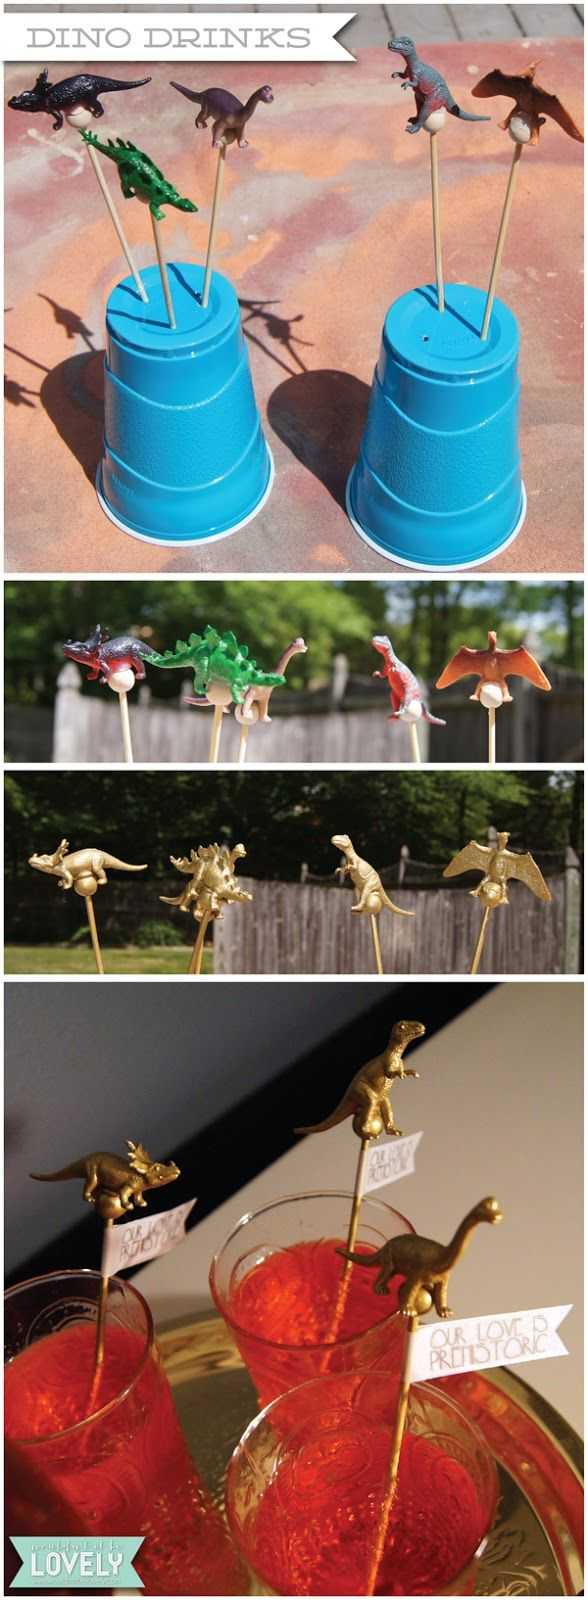 Dinosaur drink stirs, prehistoric wedding theme, mixed drinks, Wouldn't it be Lovely